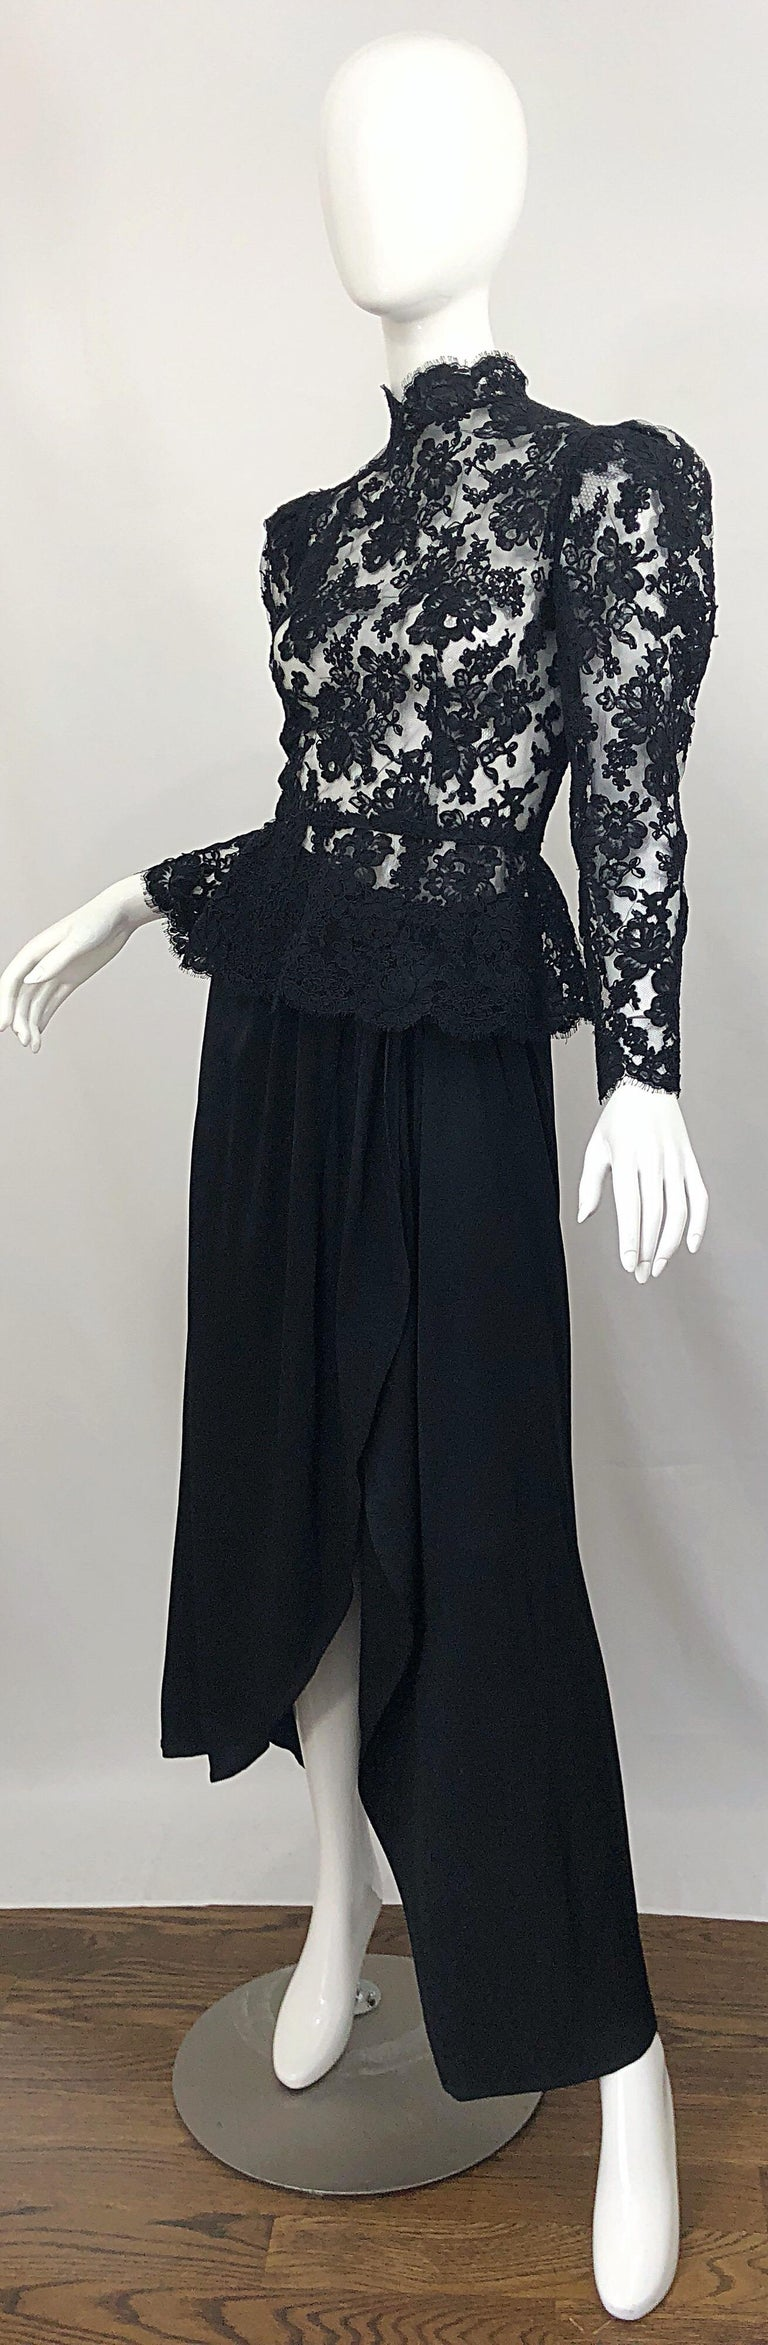 Vintage Vicky Tiel Couture 1980s Black Lace Victorian Top + Asymmetrical Skirt For Sale 6